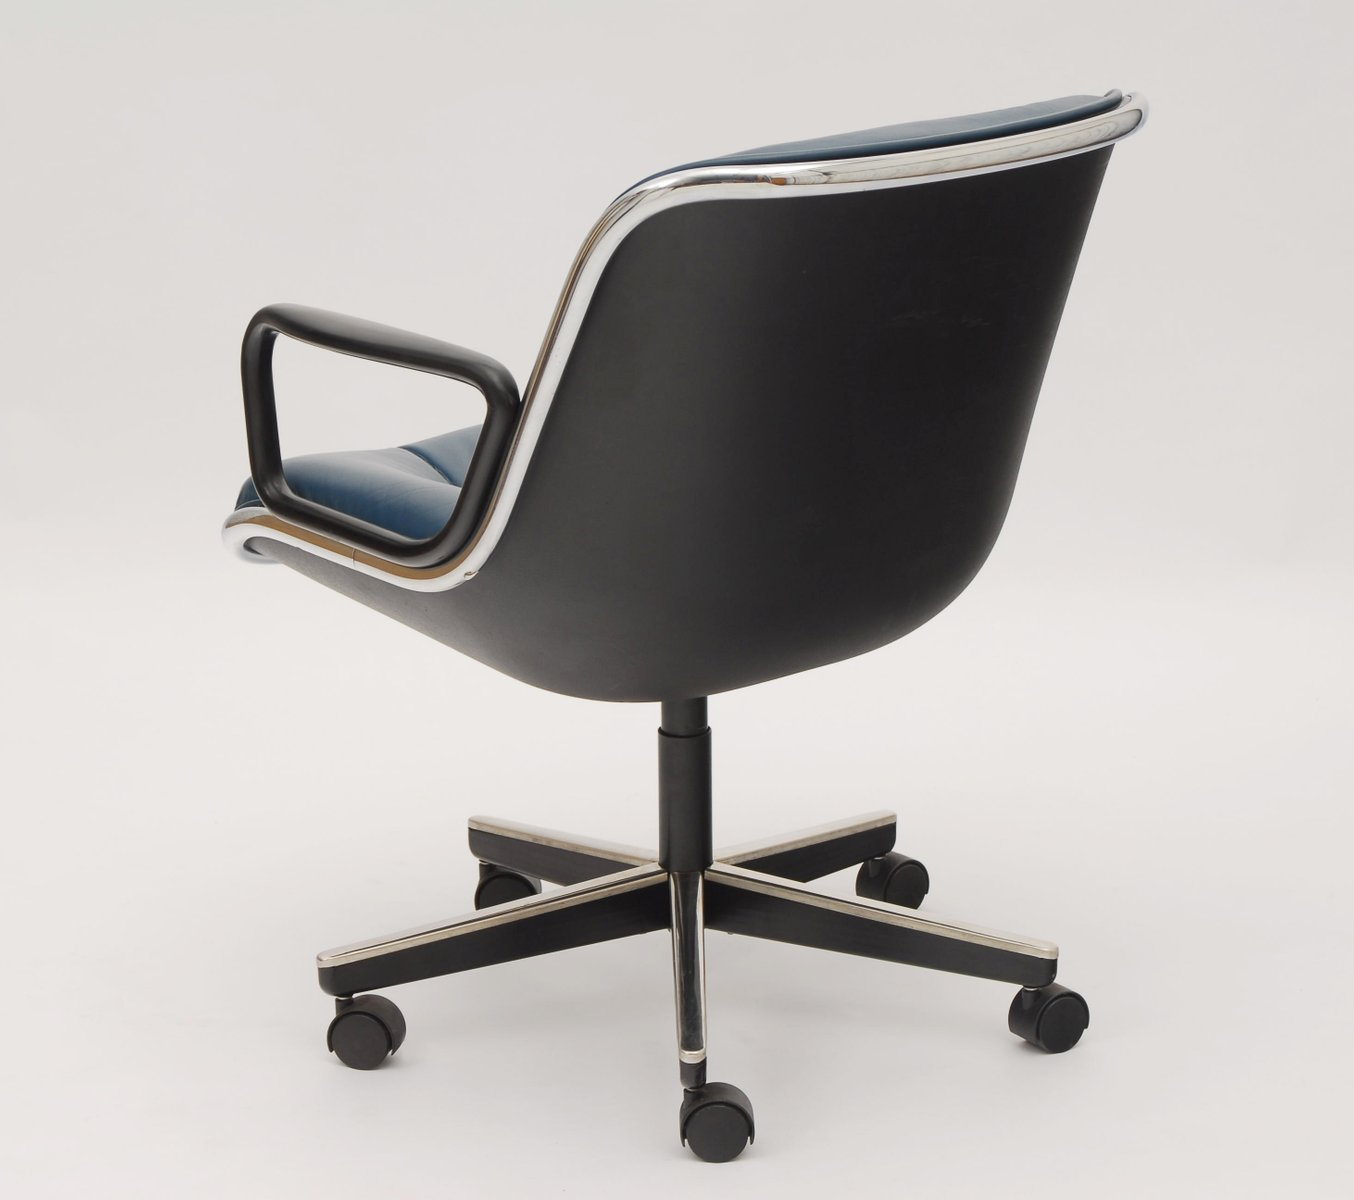 Office chair by charles pollock for knoll international for sale at pamono - Knoll inc chairs ...